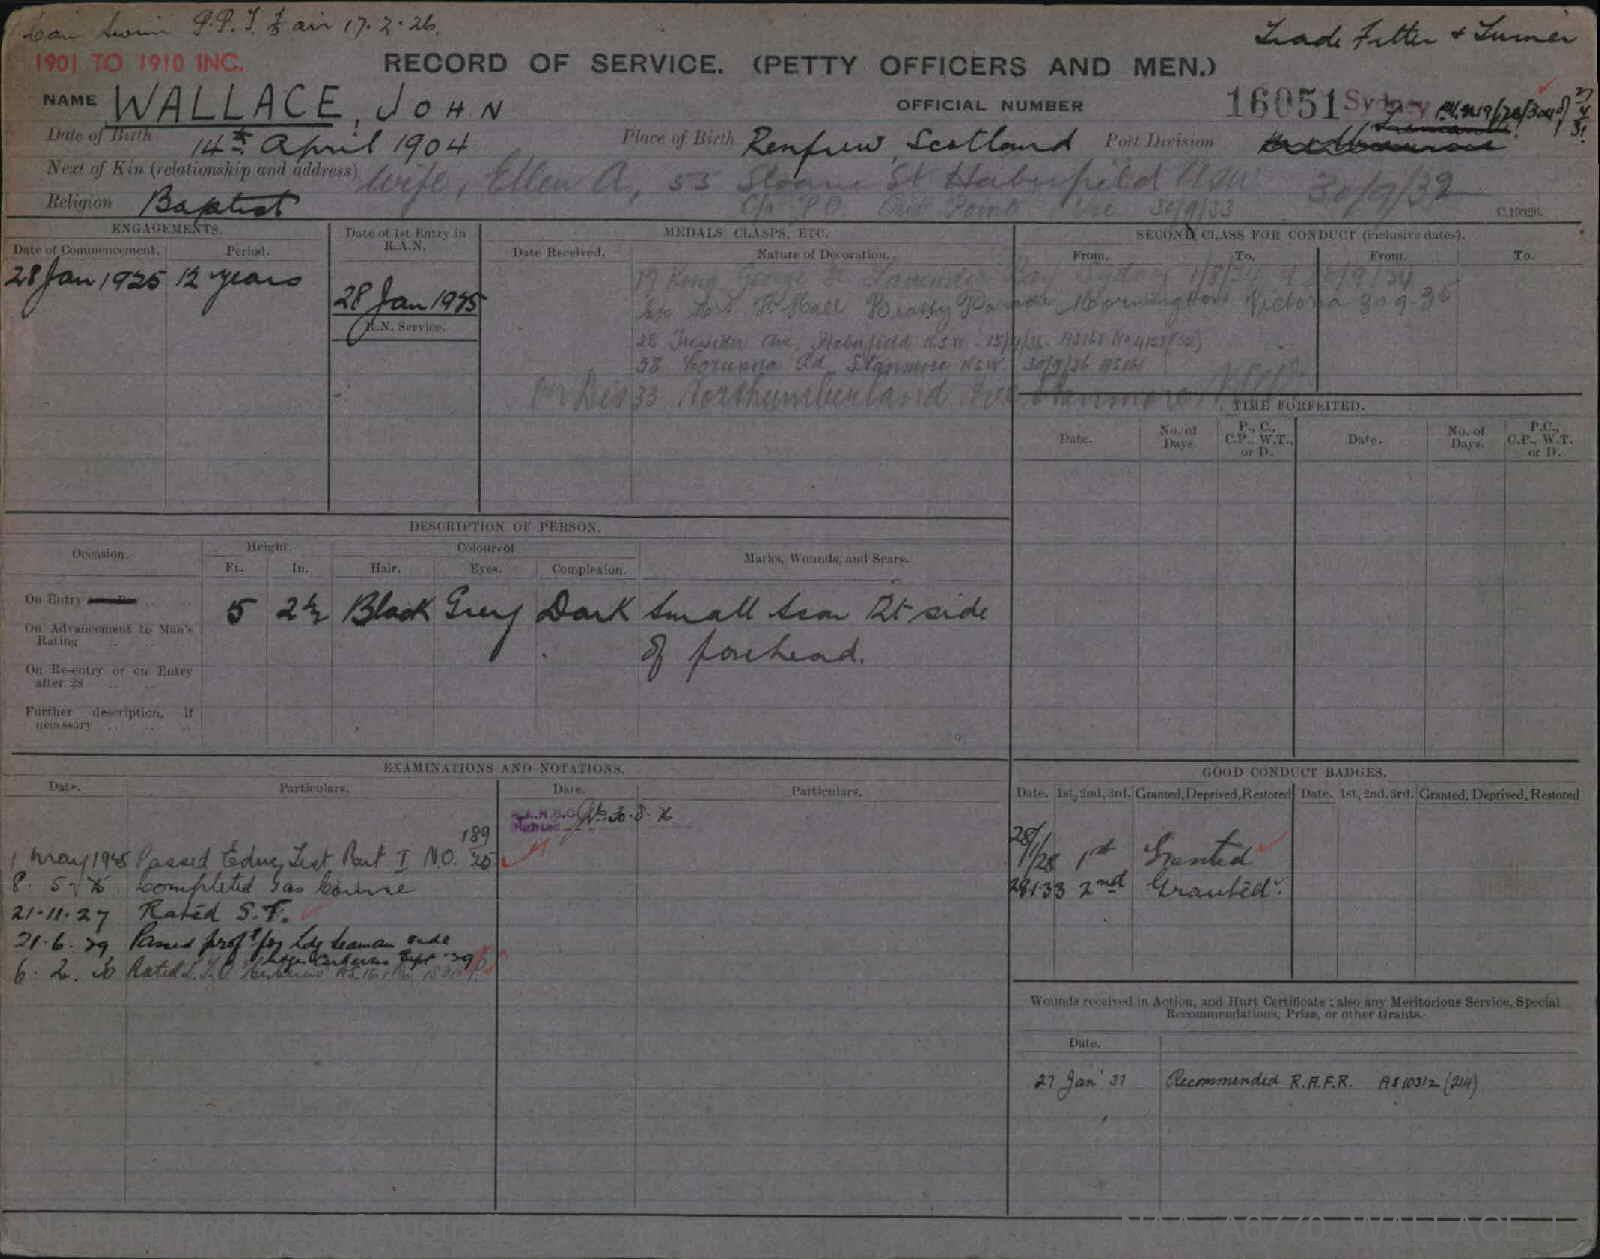 WALLACE JOHN : Service Number - 16051 : Date of birth - 14 Apr 1904 : Place of birth - RENFREW SCOTLAND : Place of enlistment - SYDNEY : Next of Kin - ELLEN